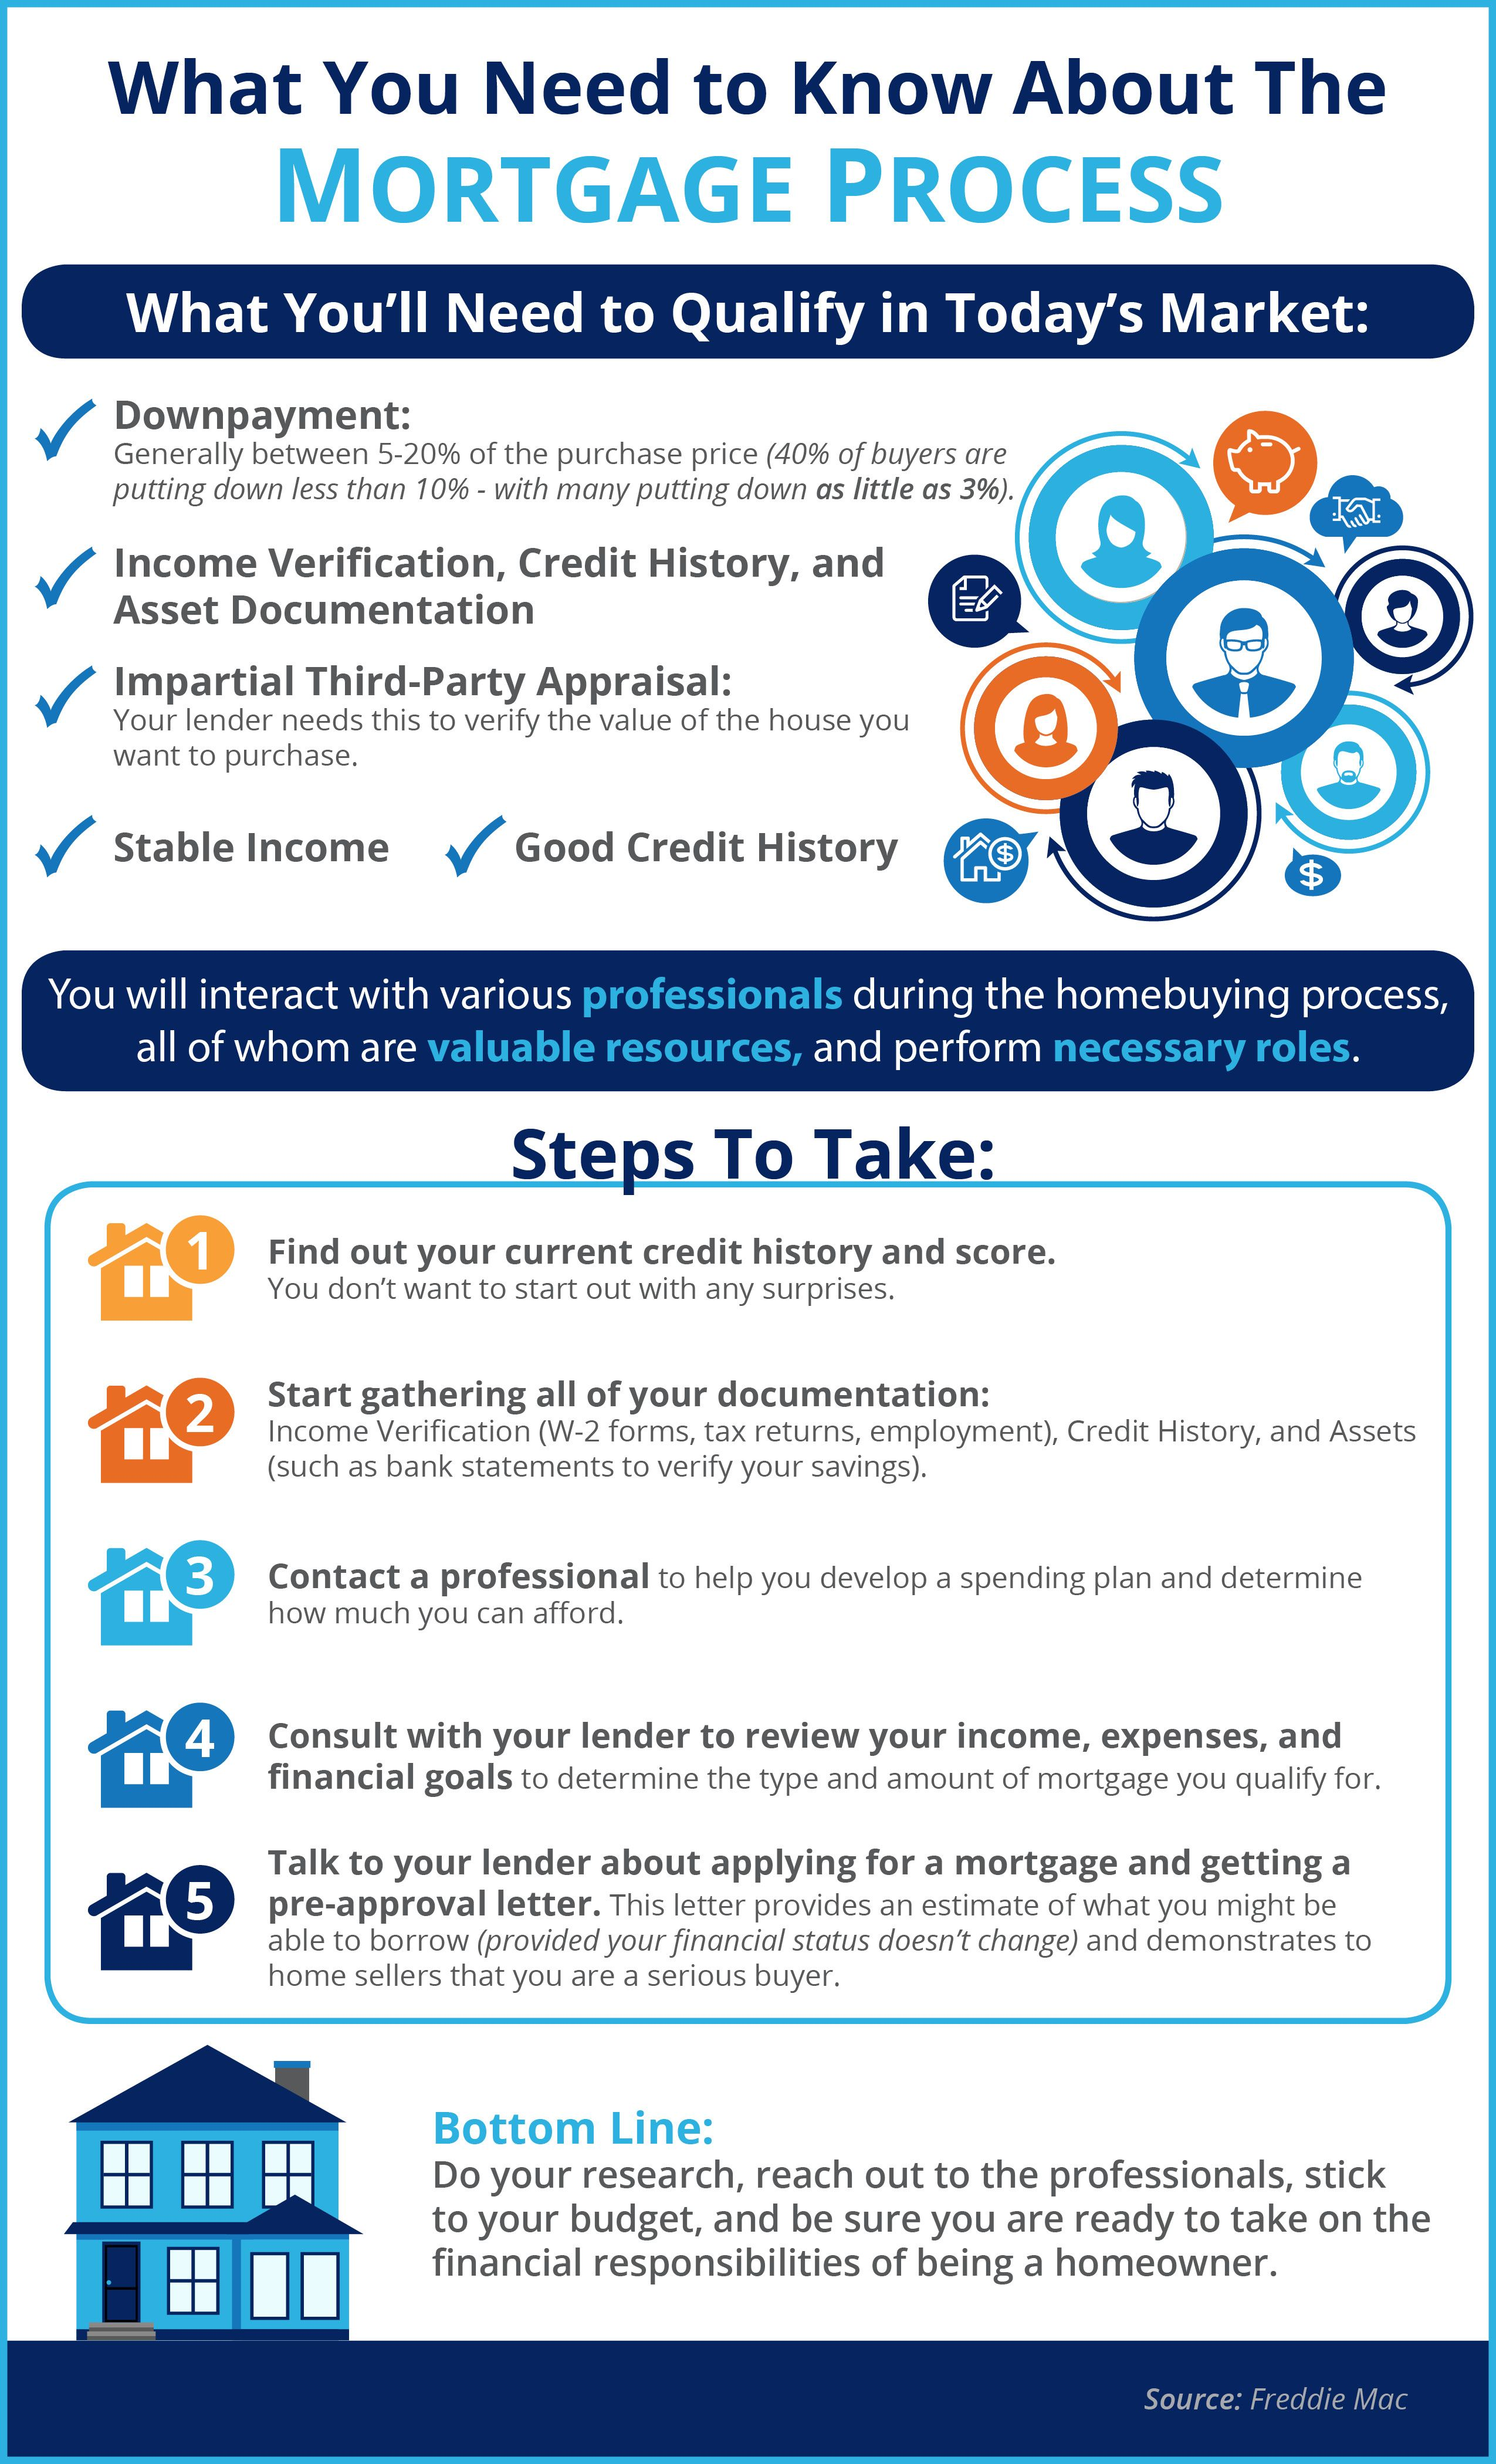 What You Need To Know About The Mortgage Process Infographic Mortgage Infographic Mortgage Process Real Estate Buyers